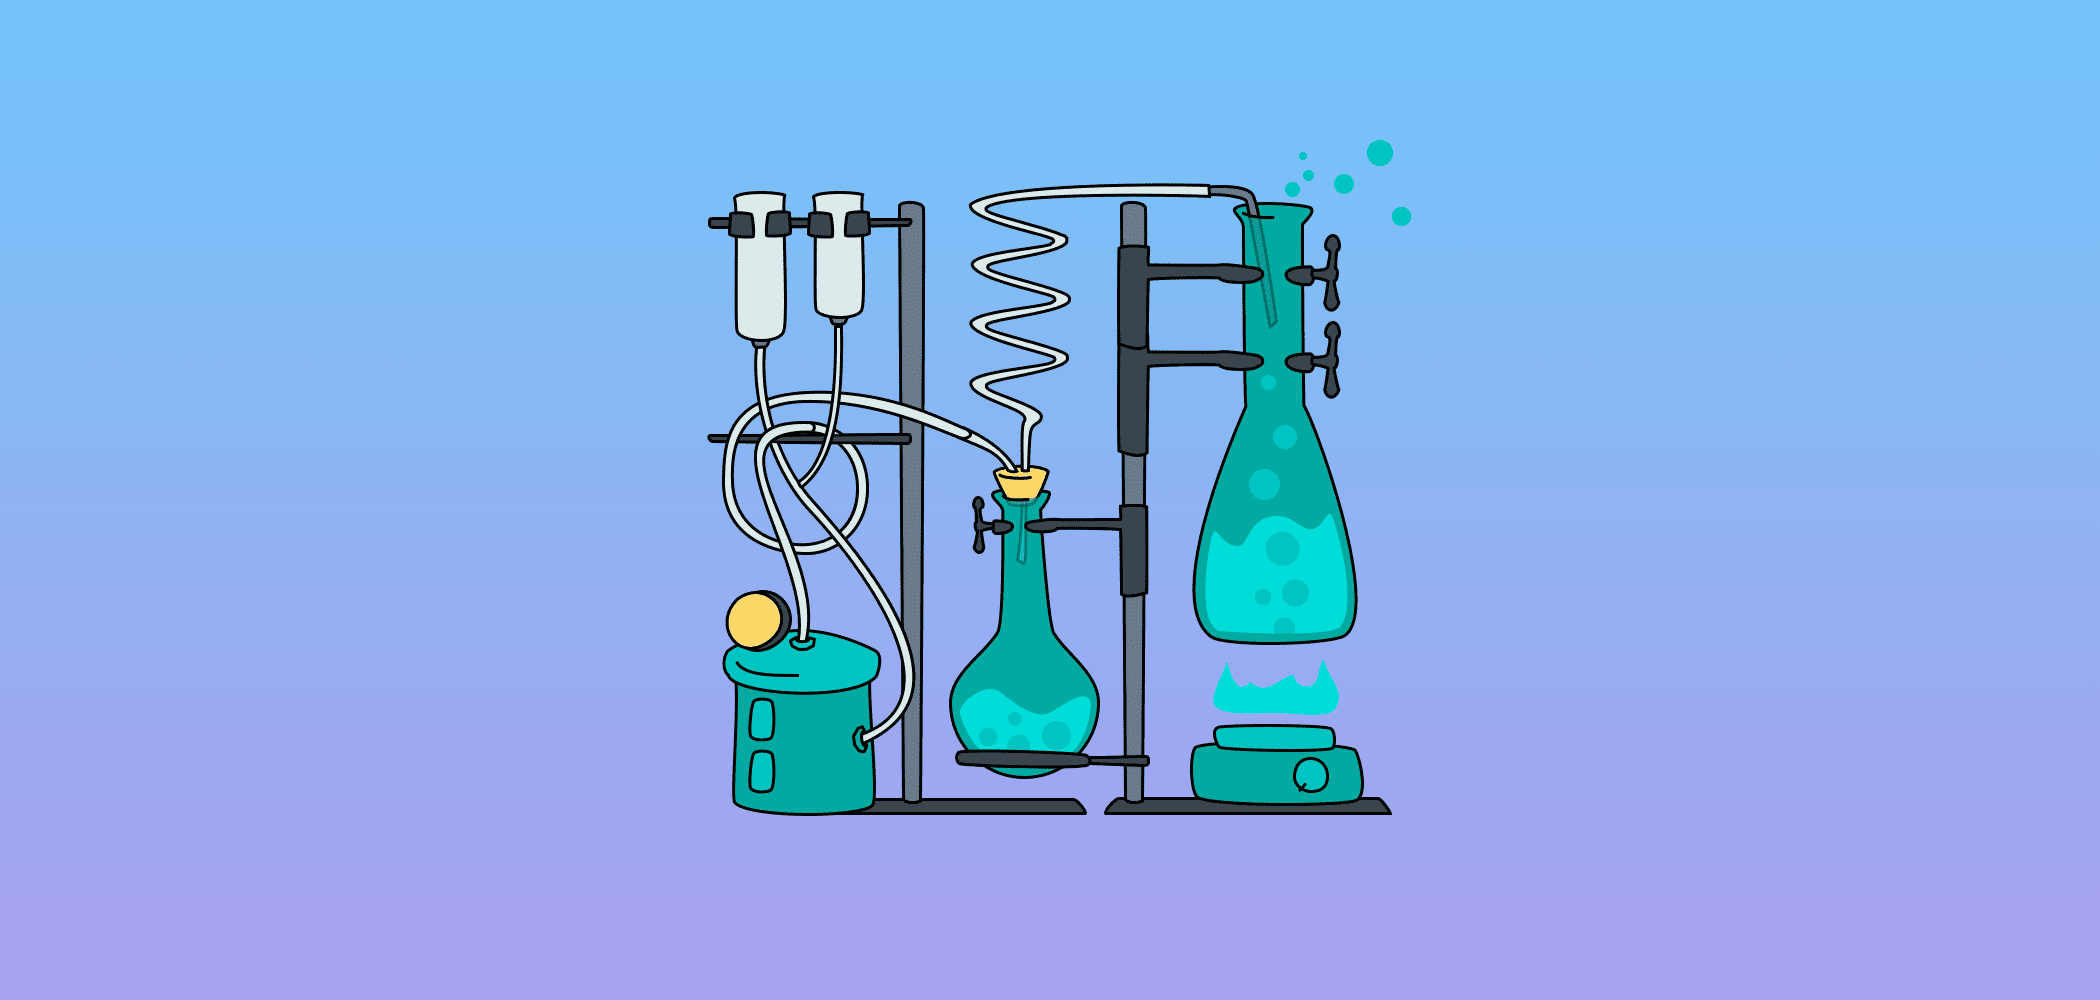 Representative image of chemistry set